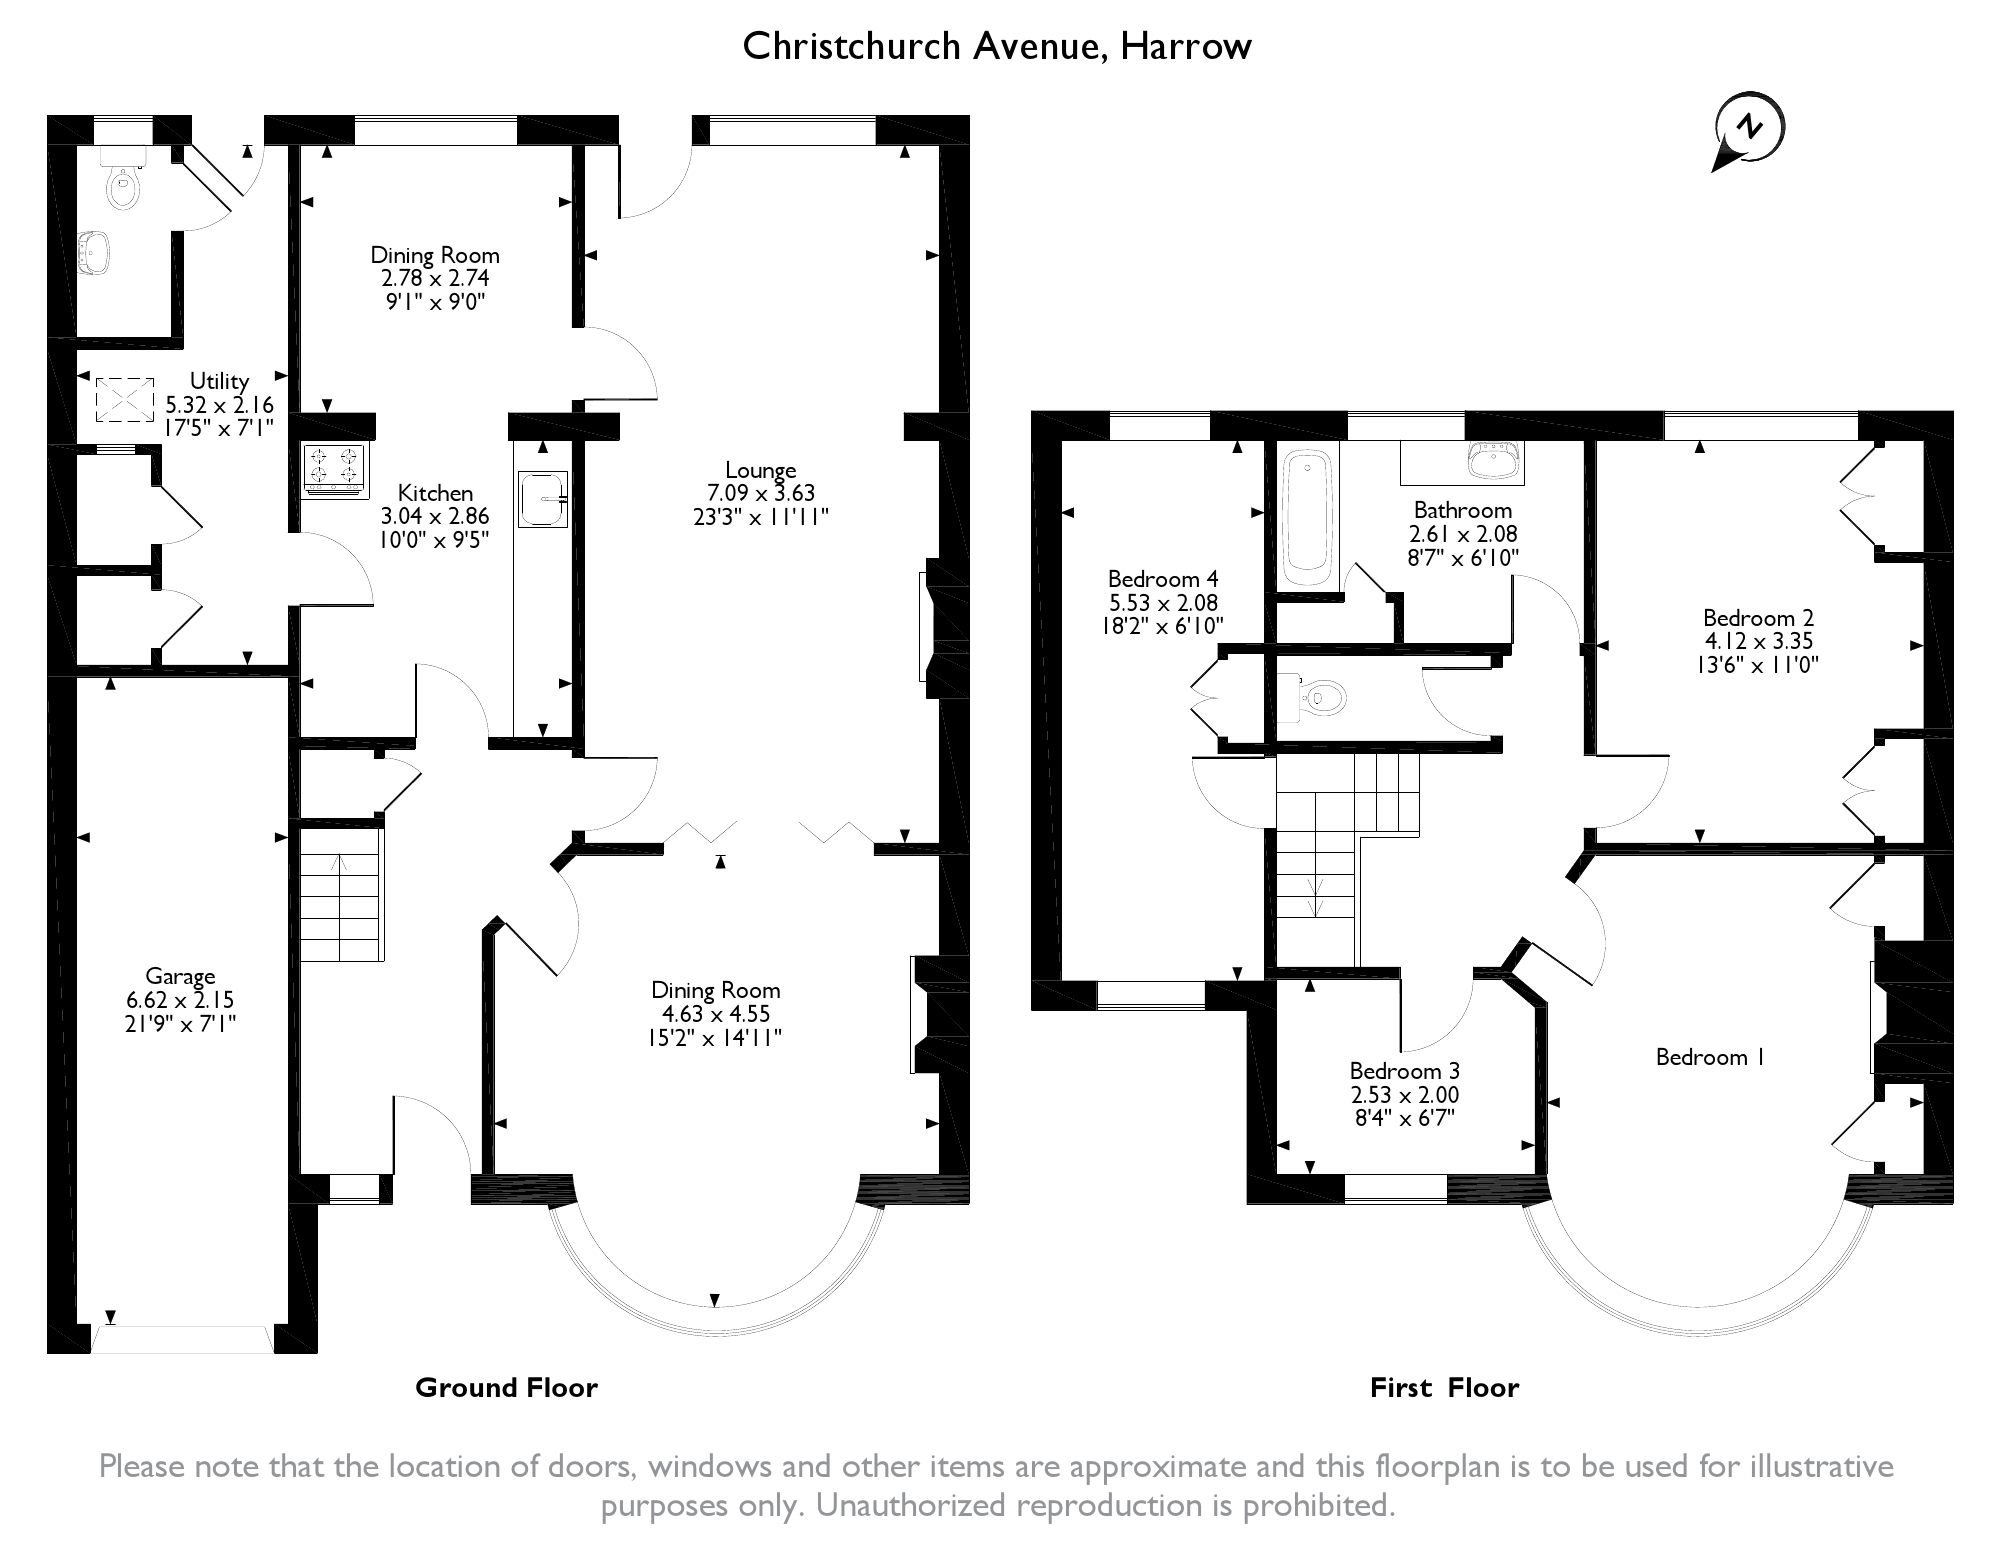 Christchurch Avenue, Harrow, HA3 floor plan